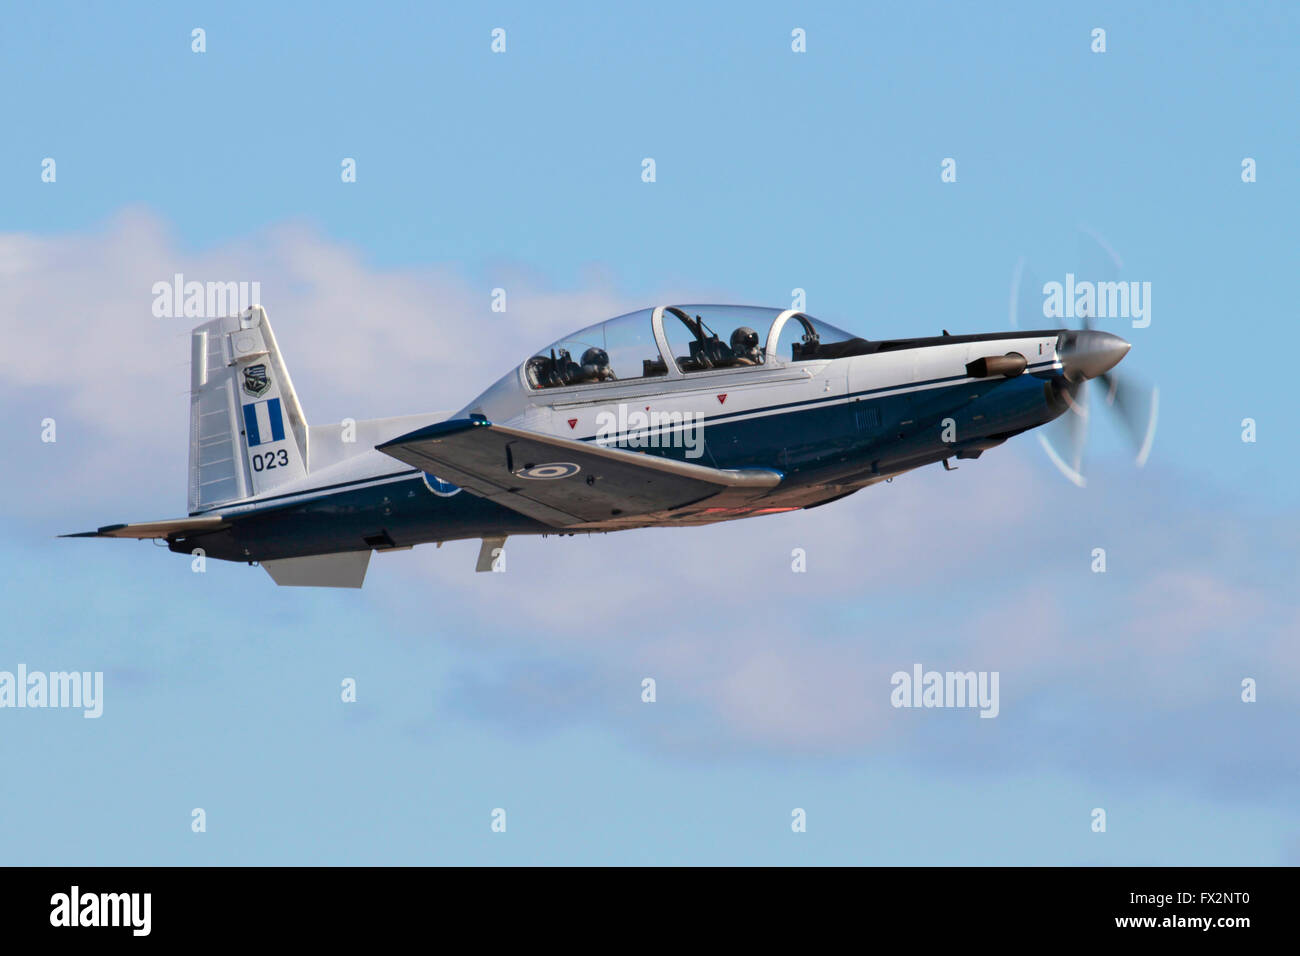 Military aviation training. Greek Air Force T-6A Texan II two-seat trainer aircraft flying in the sky - Stock Image